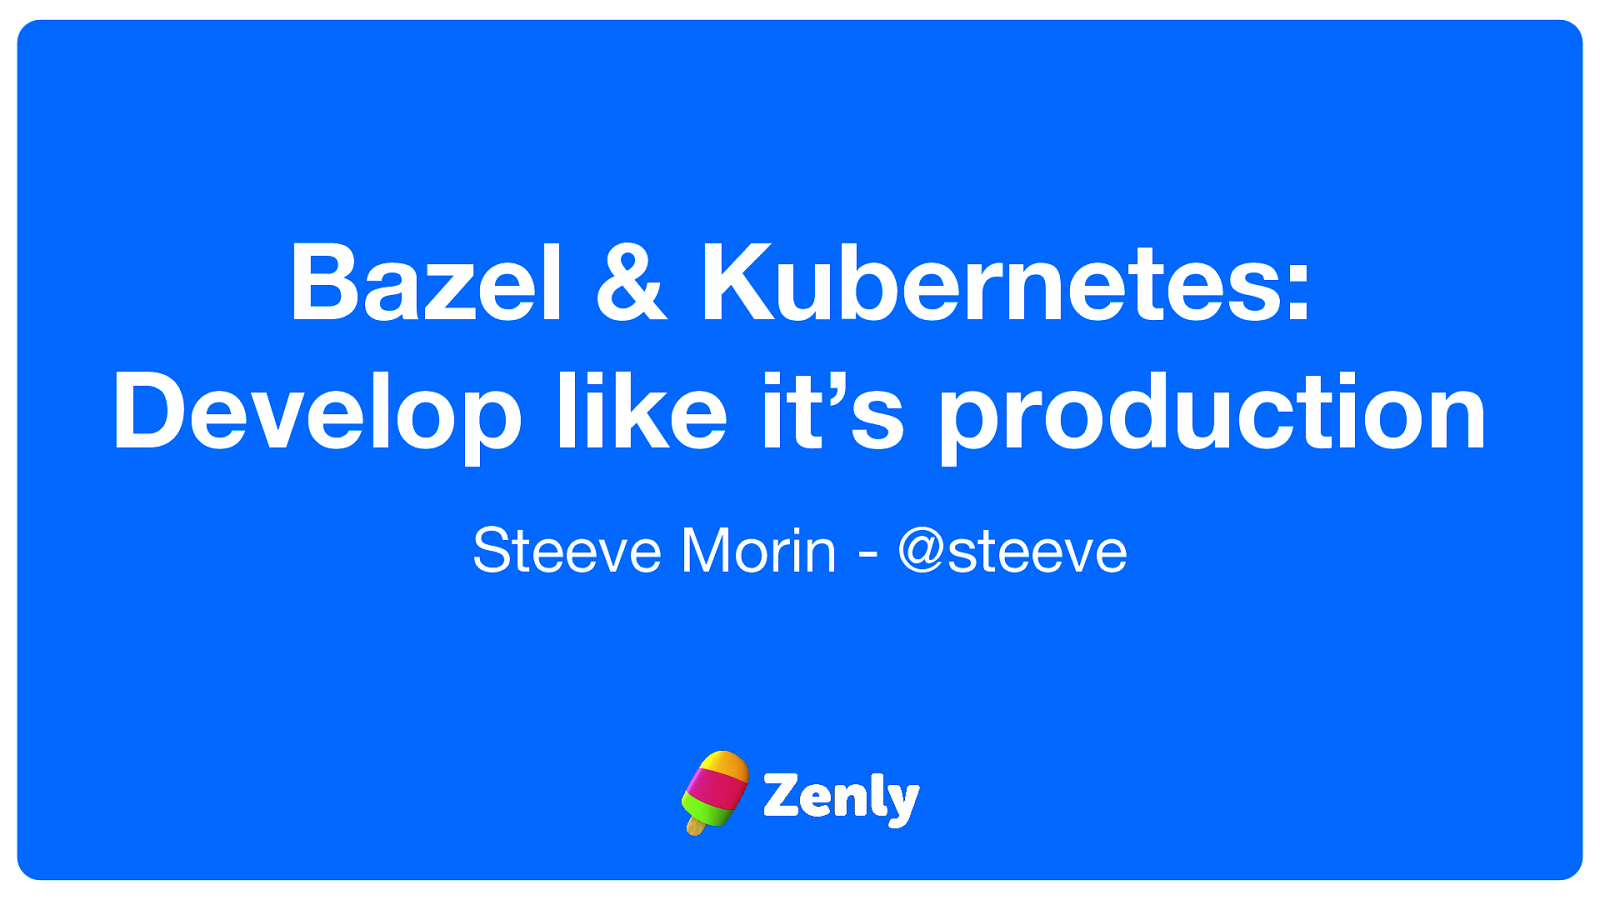 Bazel & Kubernetes: Develop like it's production